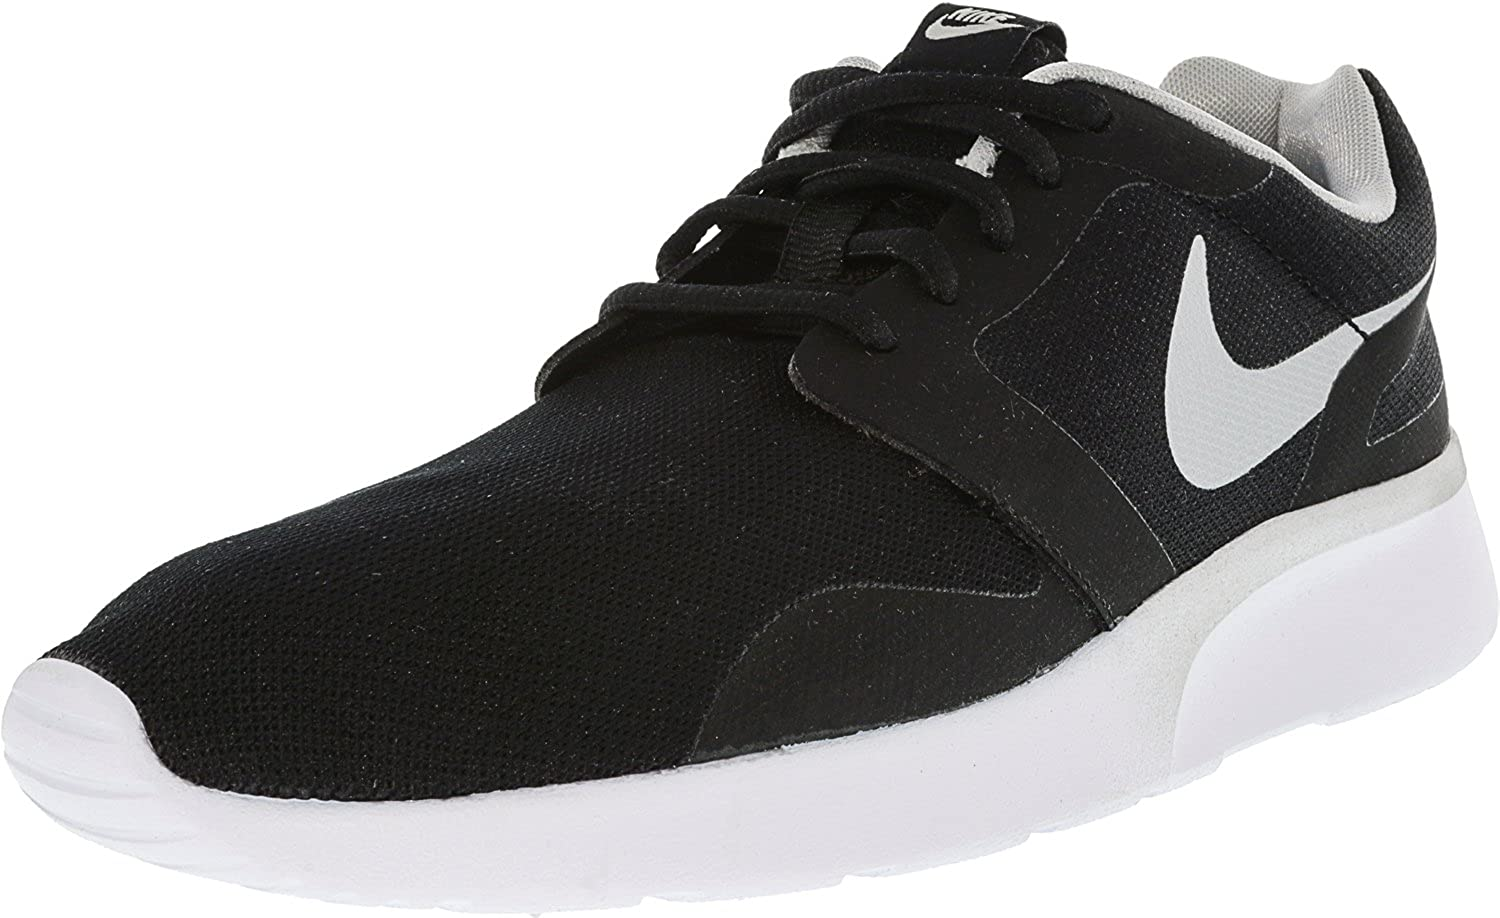 best website 4ff1e efd6d Nike Women s Kaishi Athletic Shoe (9.5, Black Metallic Silver-White)  Buy  Online at Low Prices in India - Amazon.in